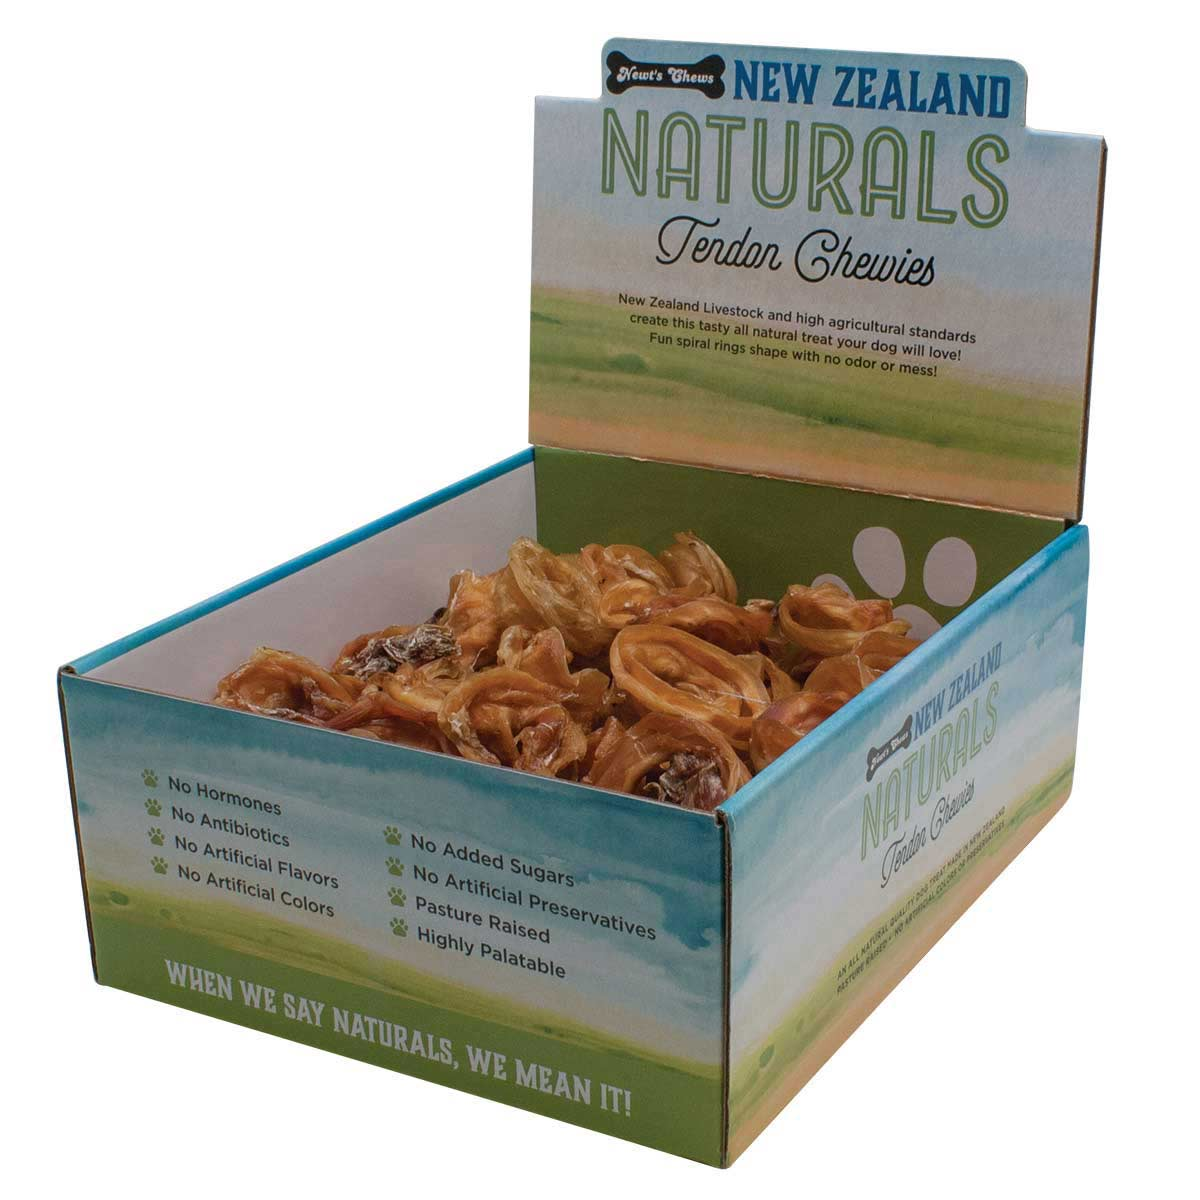 New Zealand Naturals Tendon Chewies Display Box 75 Count